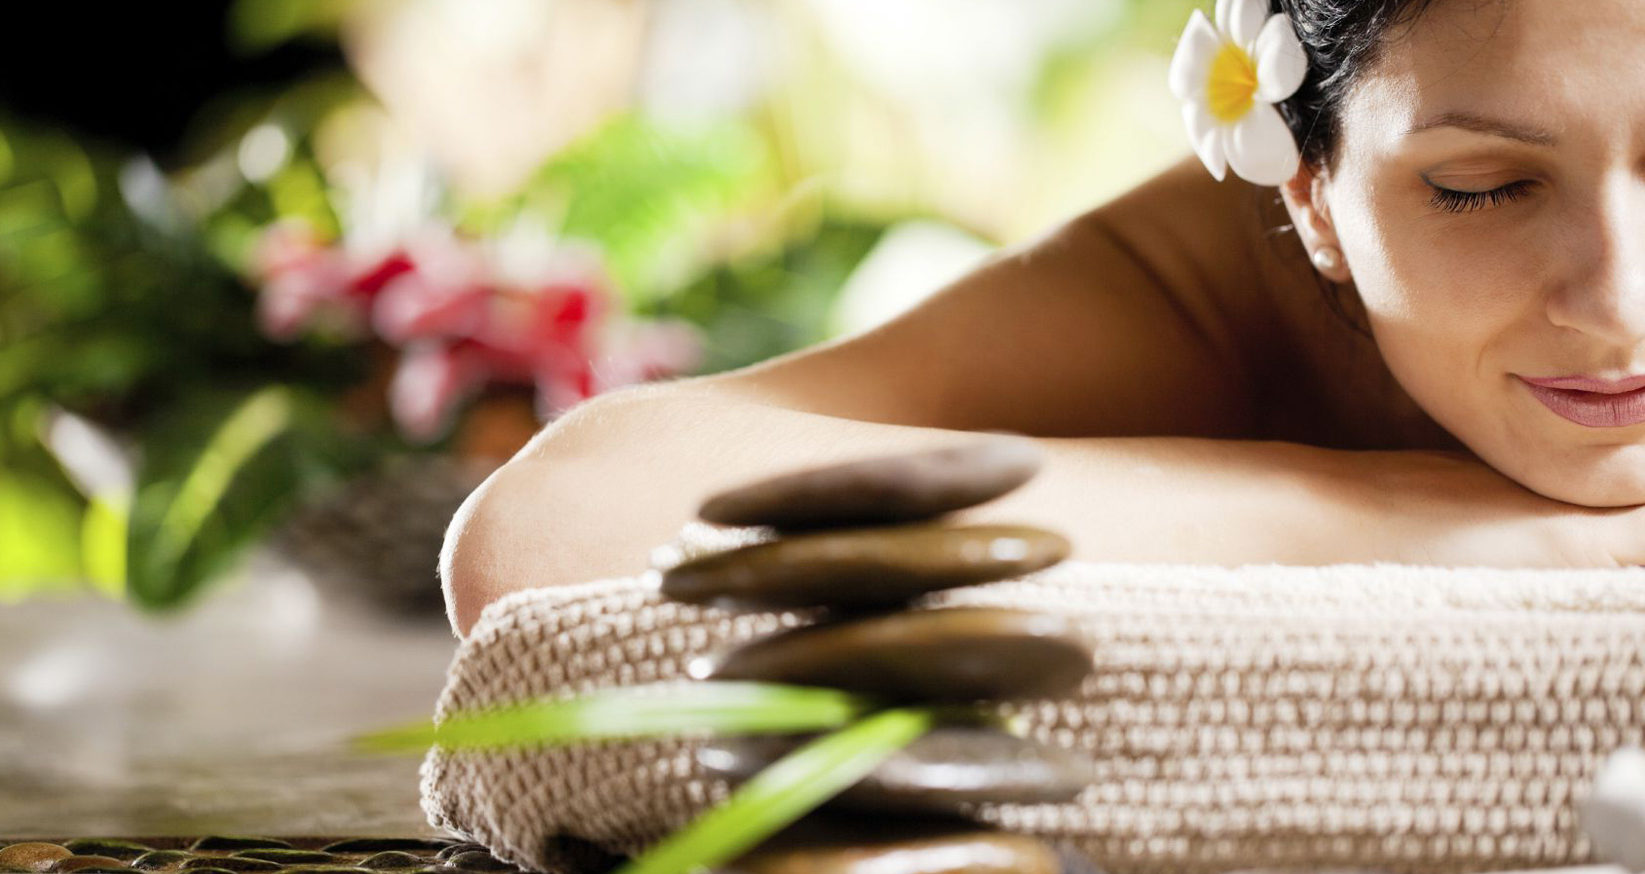 AromaSpa Salon & Boutique - Visit AromaSpa for massages or our full service organic salon which specializes in Hair, Makeup & Skin Care.